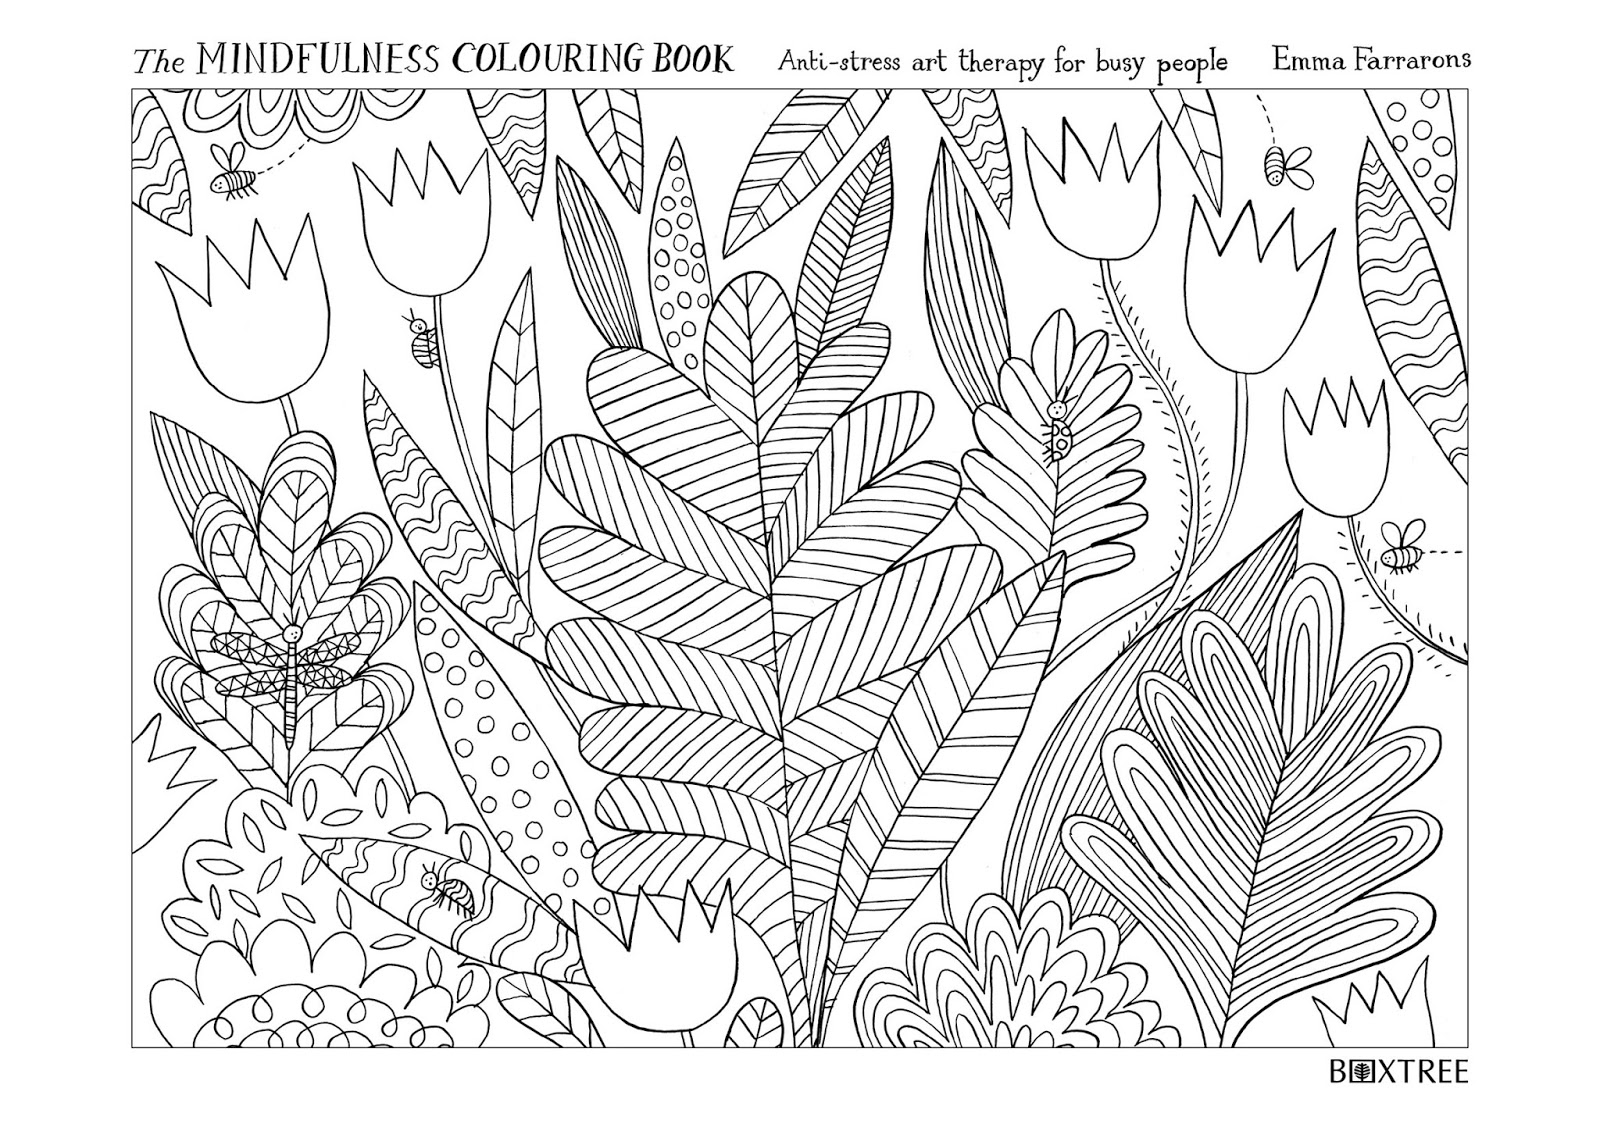 How to say colouring book in japanese - Un Petit Blog By Emma Farrarons The Mindfulness Colouring Book Anti Stress Art Therapy For Busy People